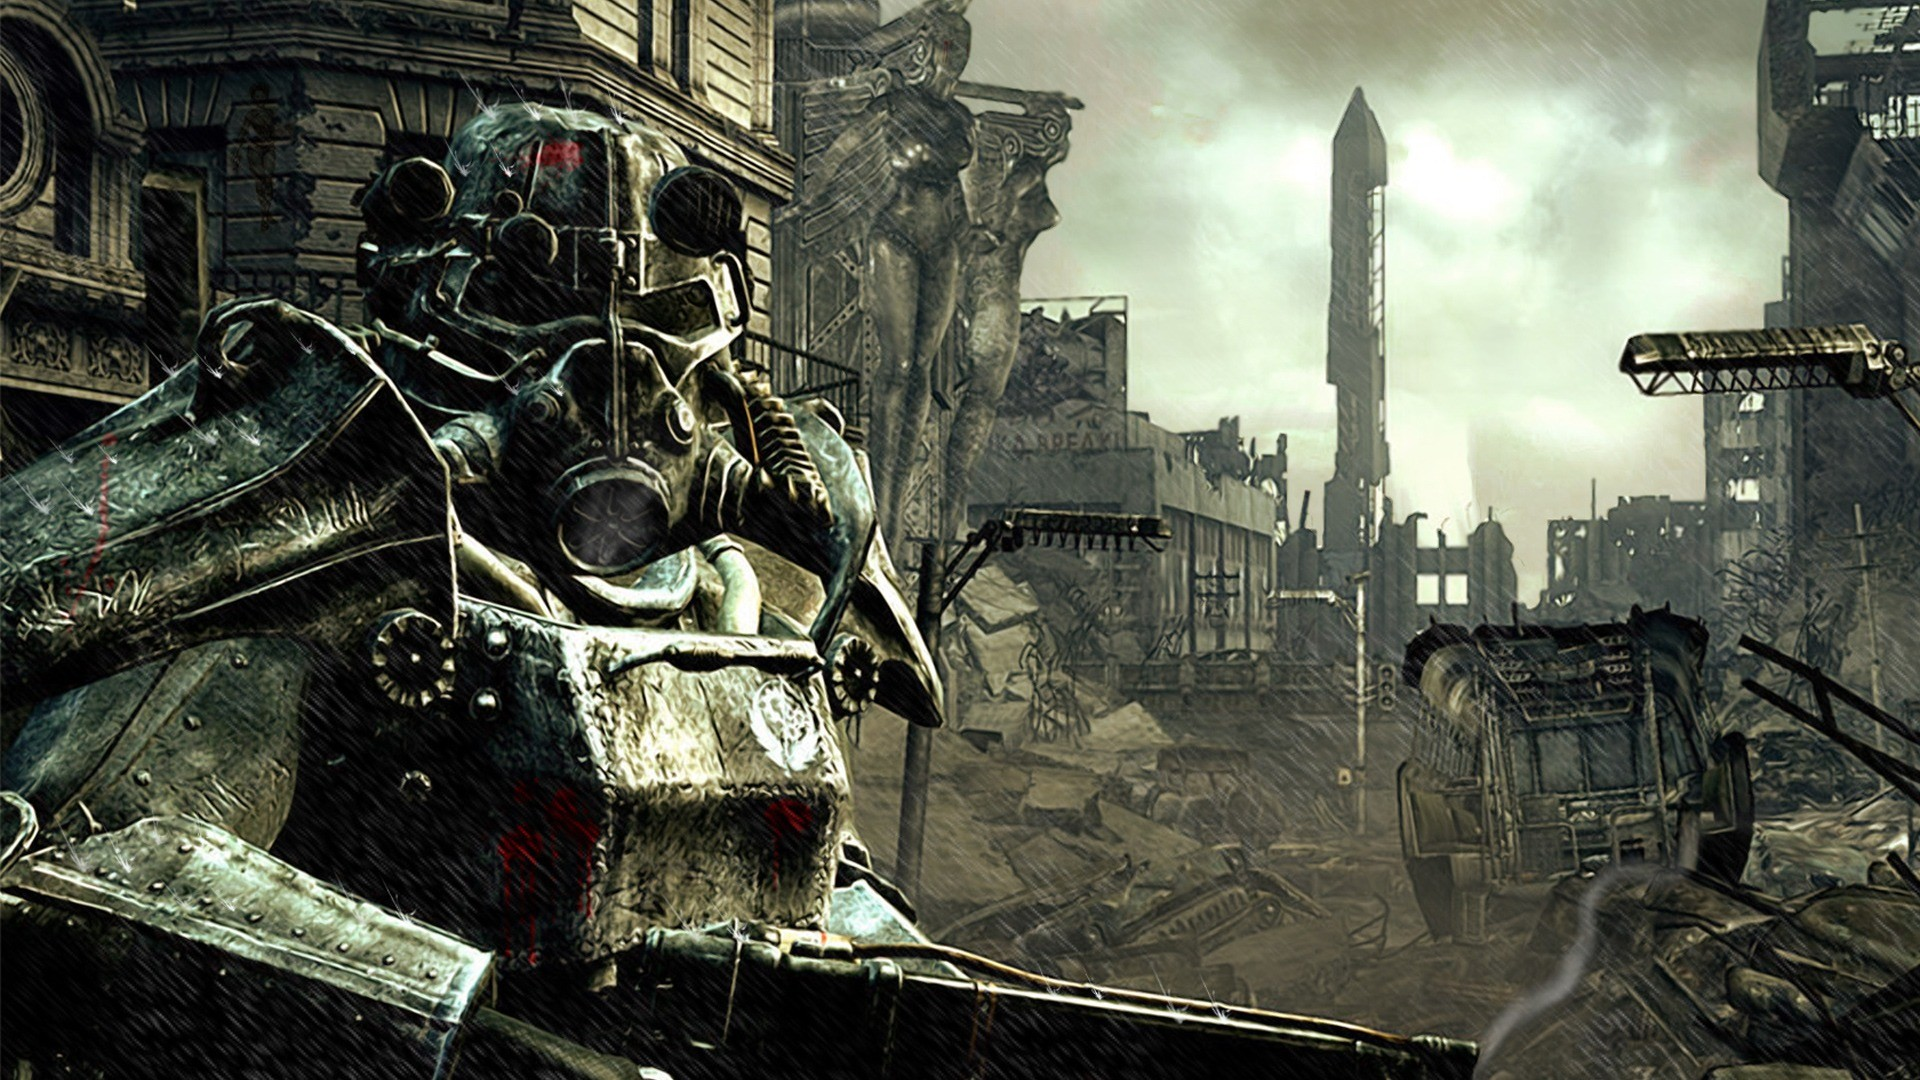 Fallout 3 wallpapers 68 images 1920x1080 computerspiele fallout 3 wallpaper voltagebd Image collections